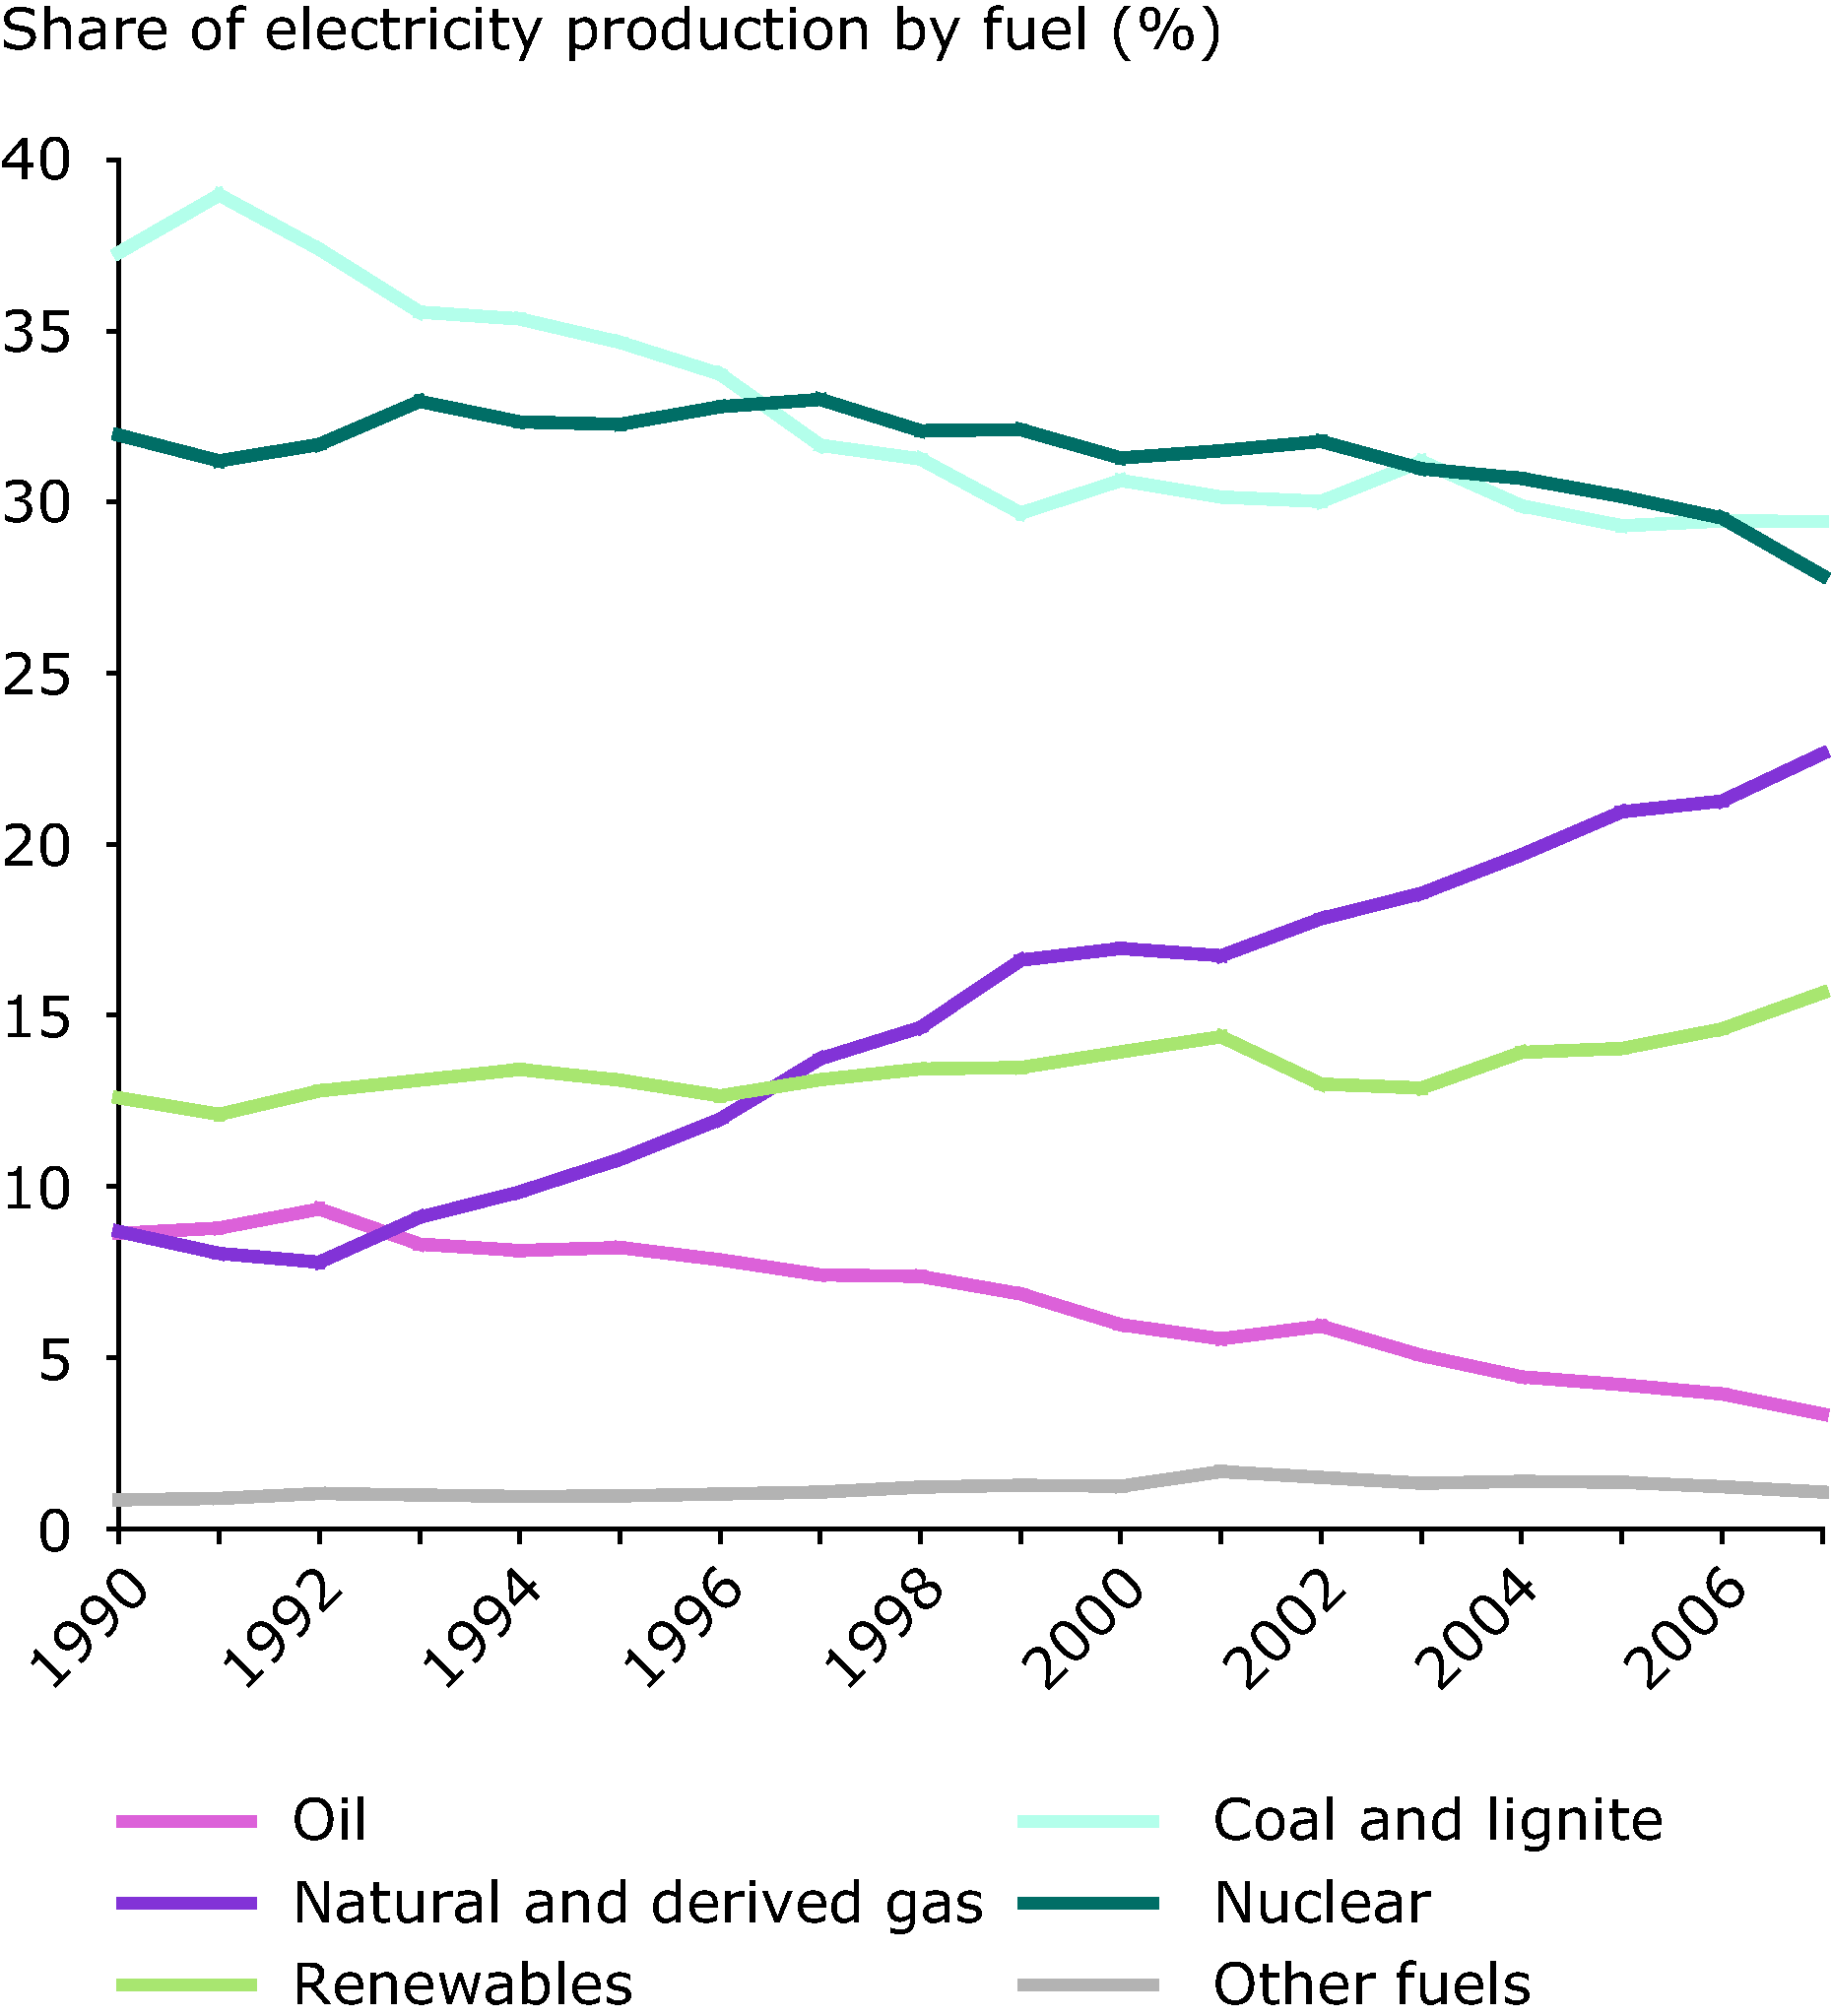 Share of electricity production by fuel type, 1990-2007 (%), EU-27